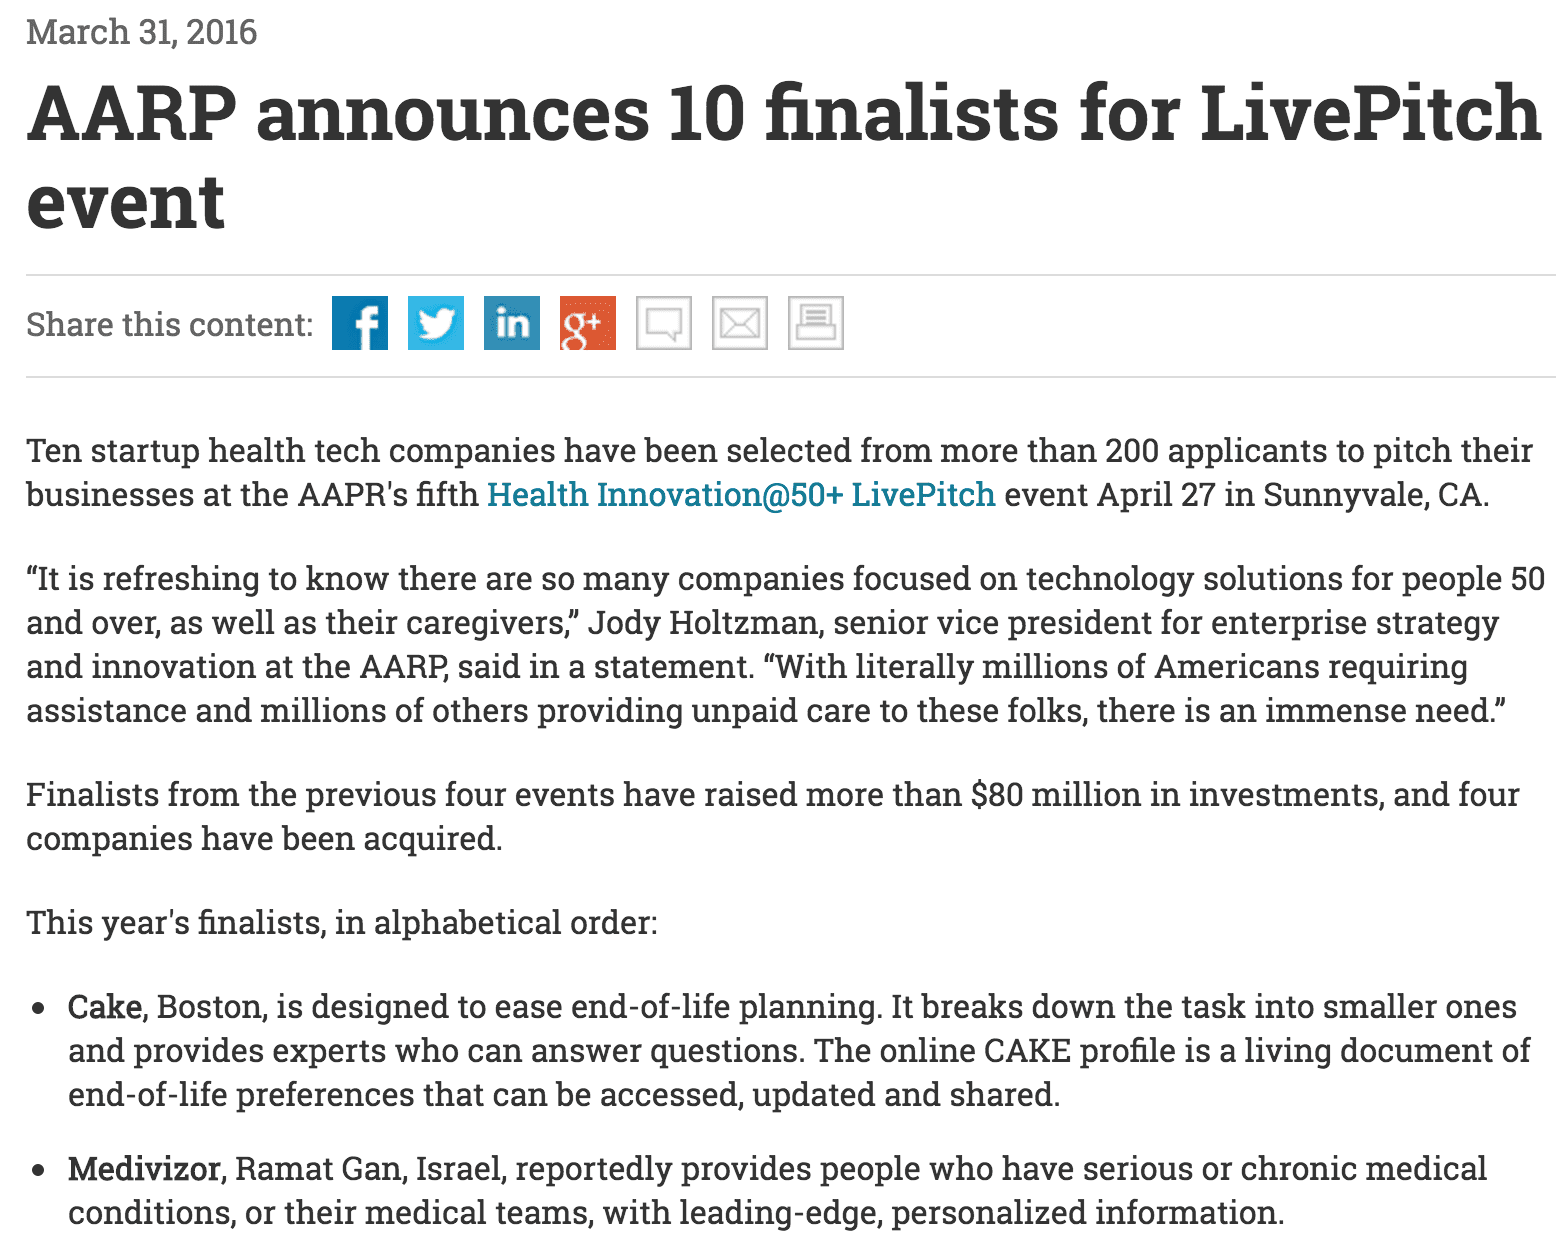 Ten startup health tech companies have been selected from more than 200 applicants to pitch their businesses at the AAPR's fifth Health Innovation@50+ LivePitch event April 27 in Sunnyvale, CA.